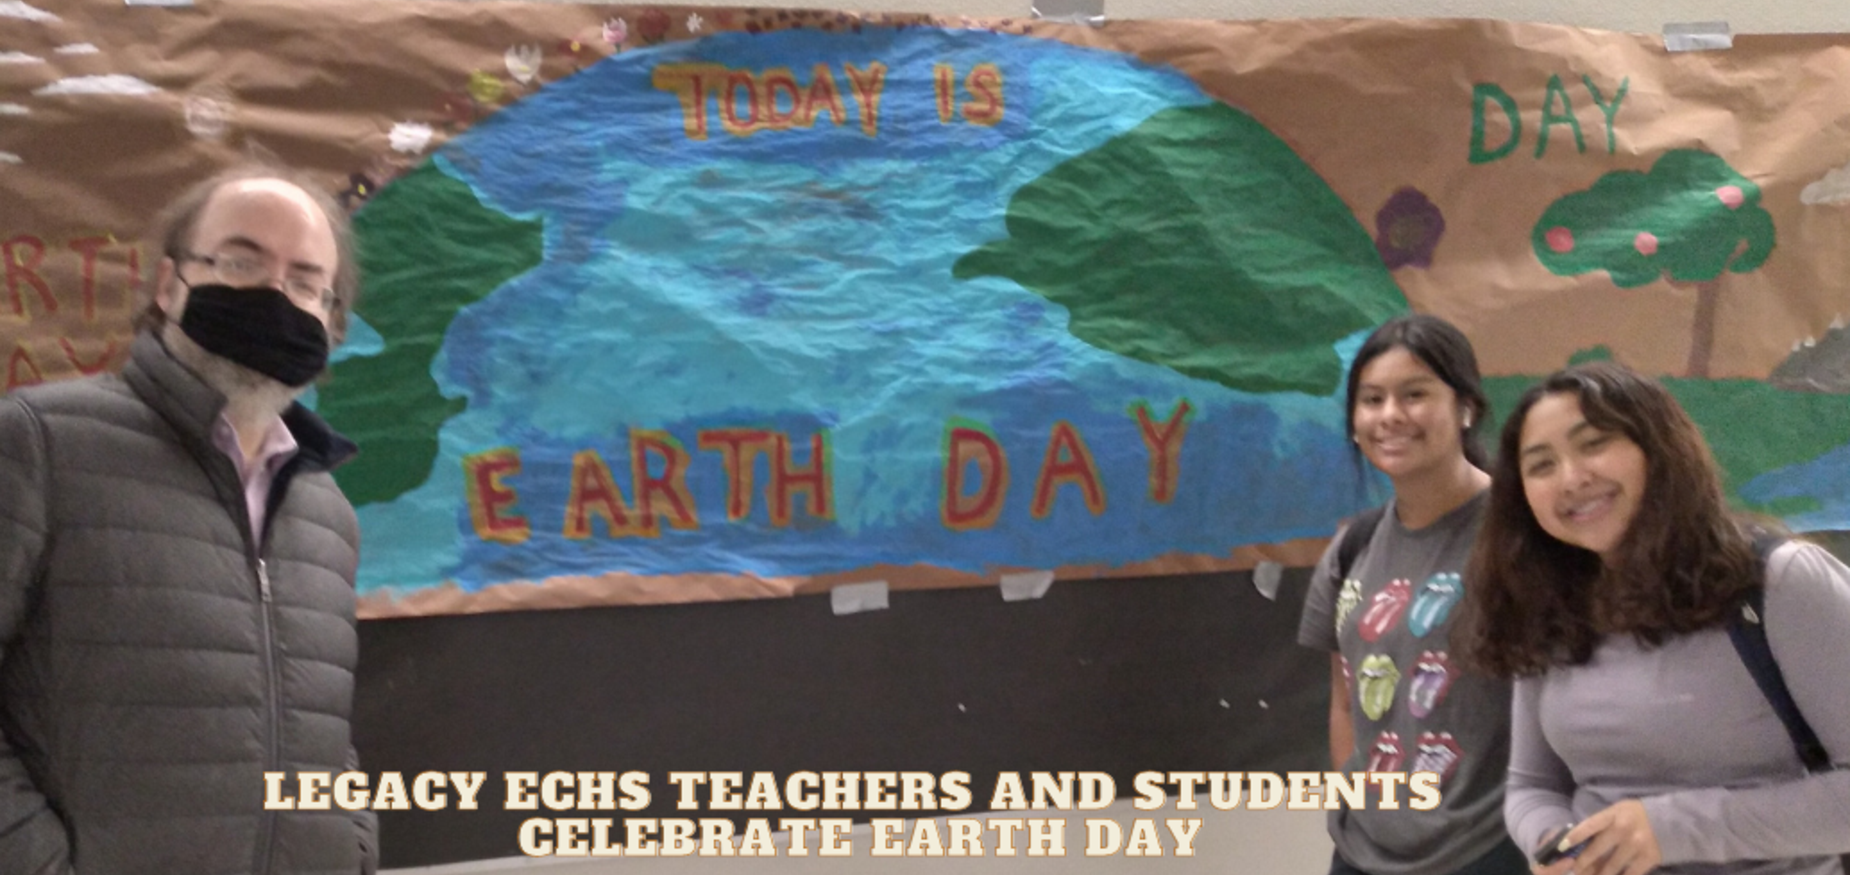 Legacy ECHS teachers and students  celebrate Earth Day